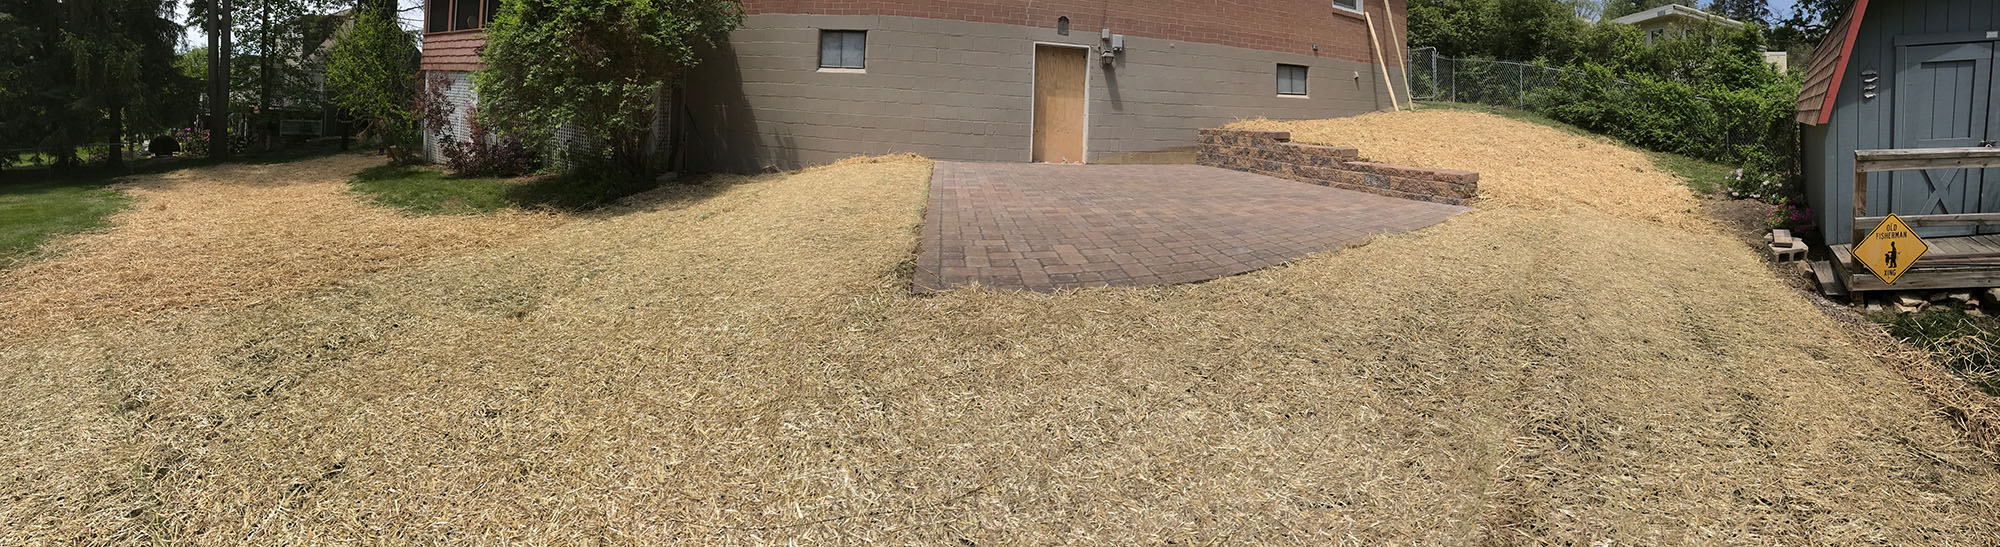 2017 Hardscape Patio Installation 3.JPG